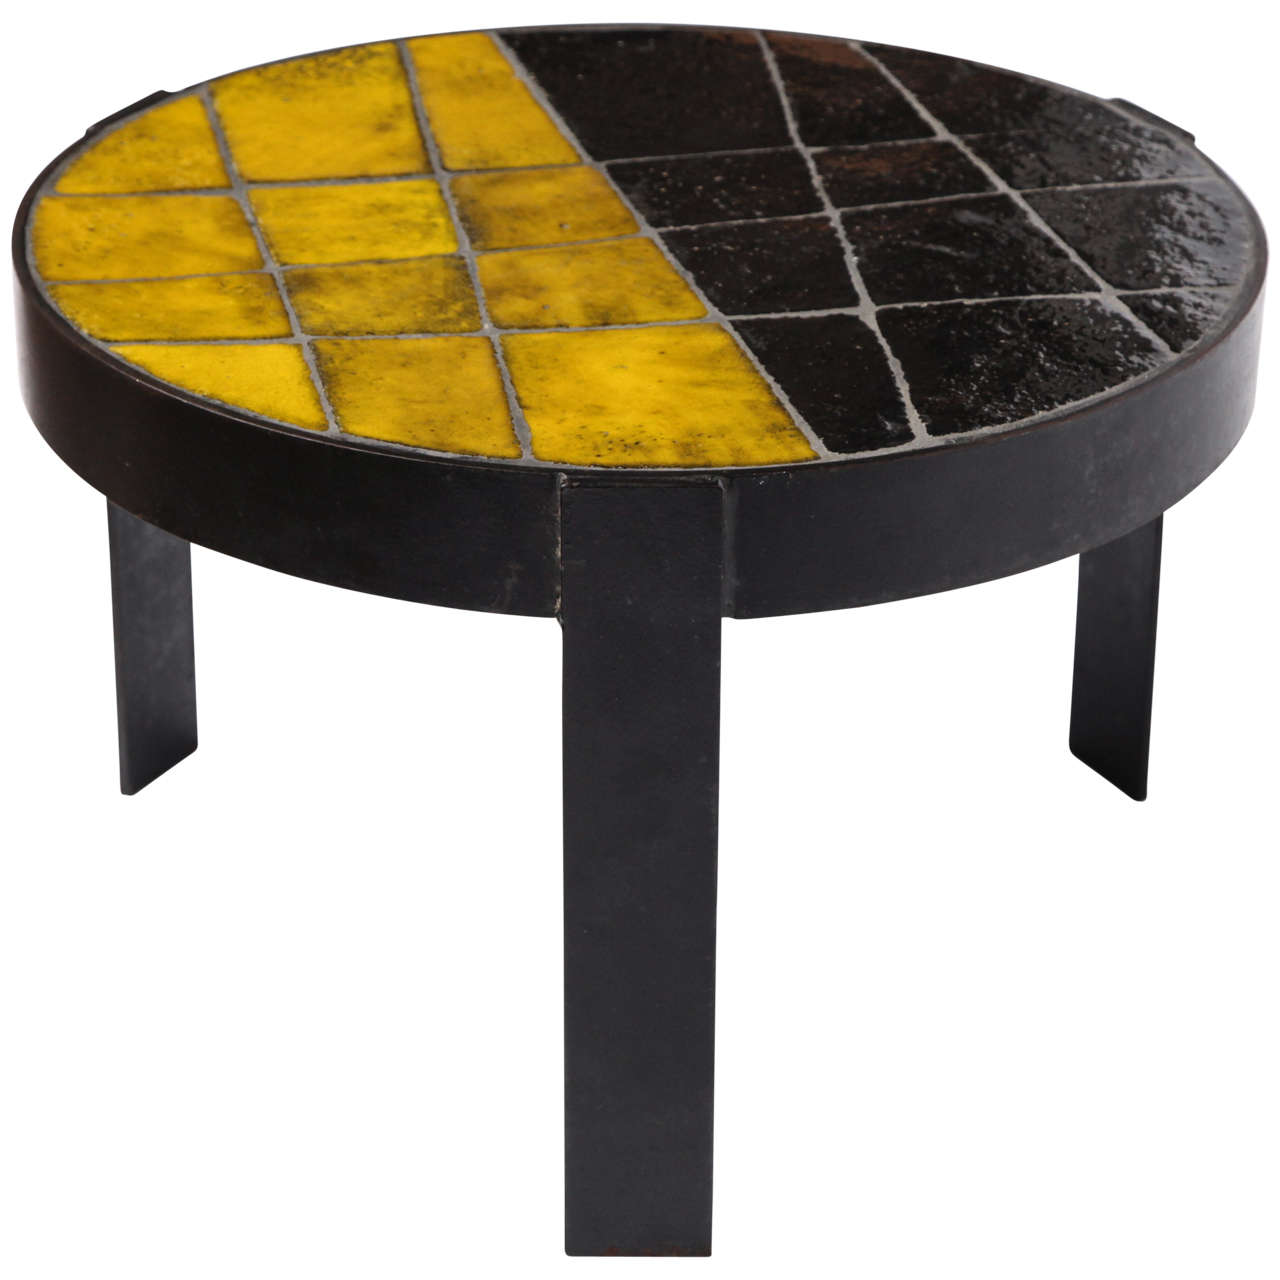 Unusual Ceramic Tile Top Table For Sale